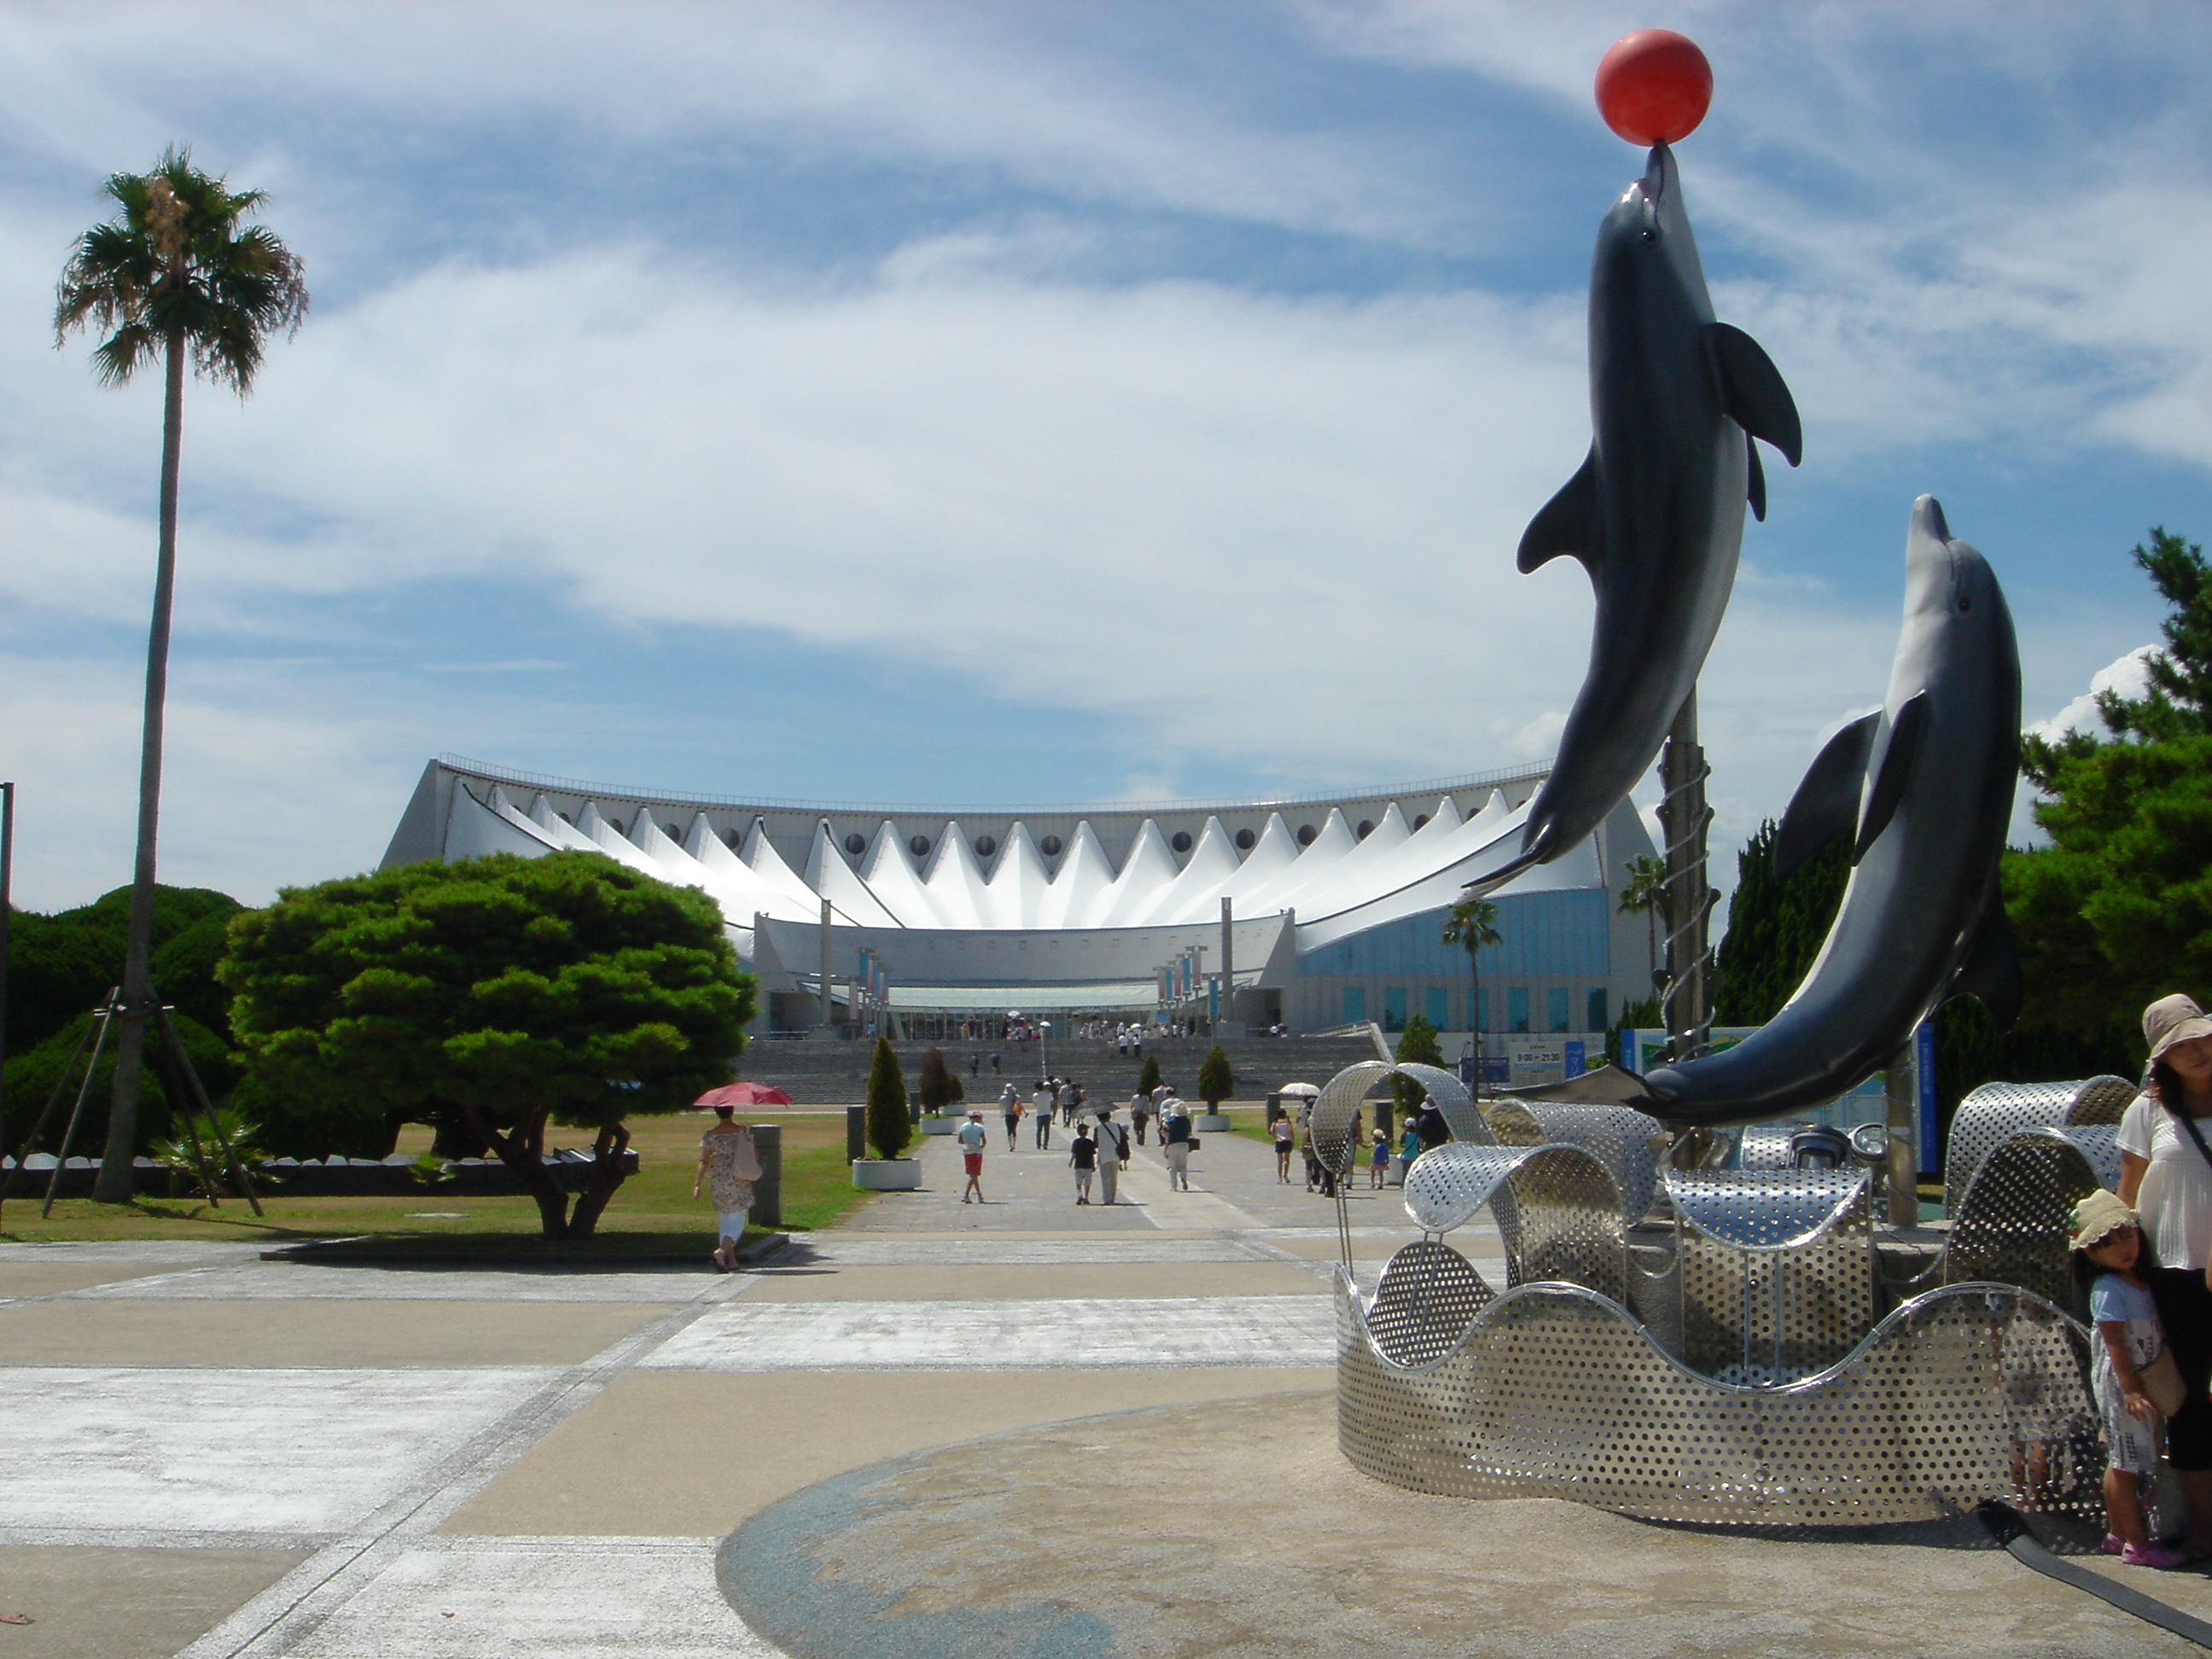 Marine World Uminonakamichi - Aquarium in Fukuoka - Thousand Wonders